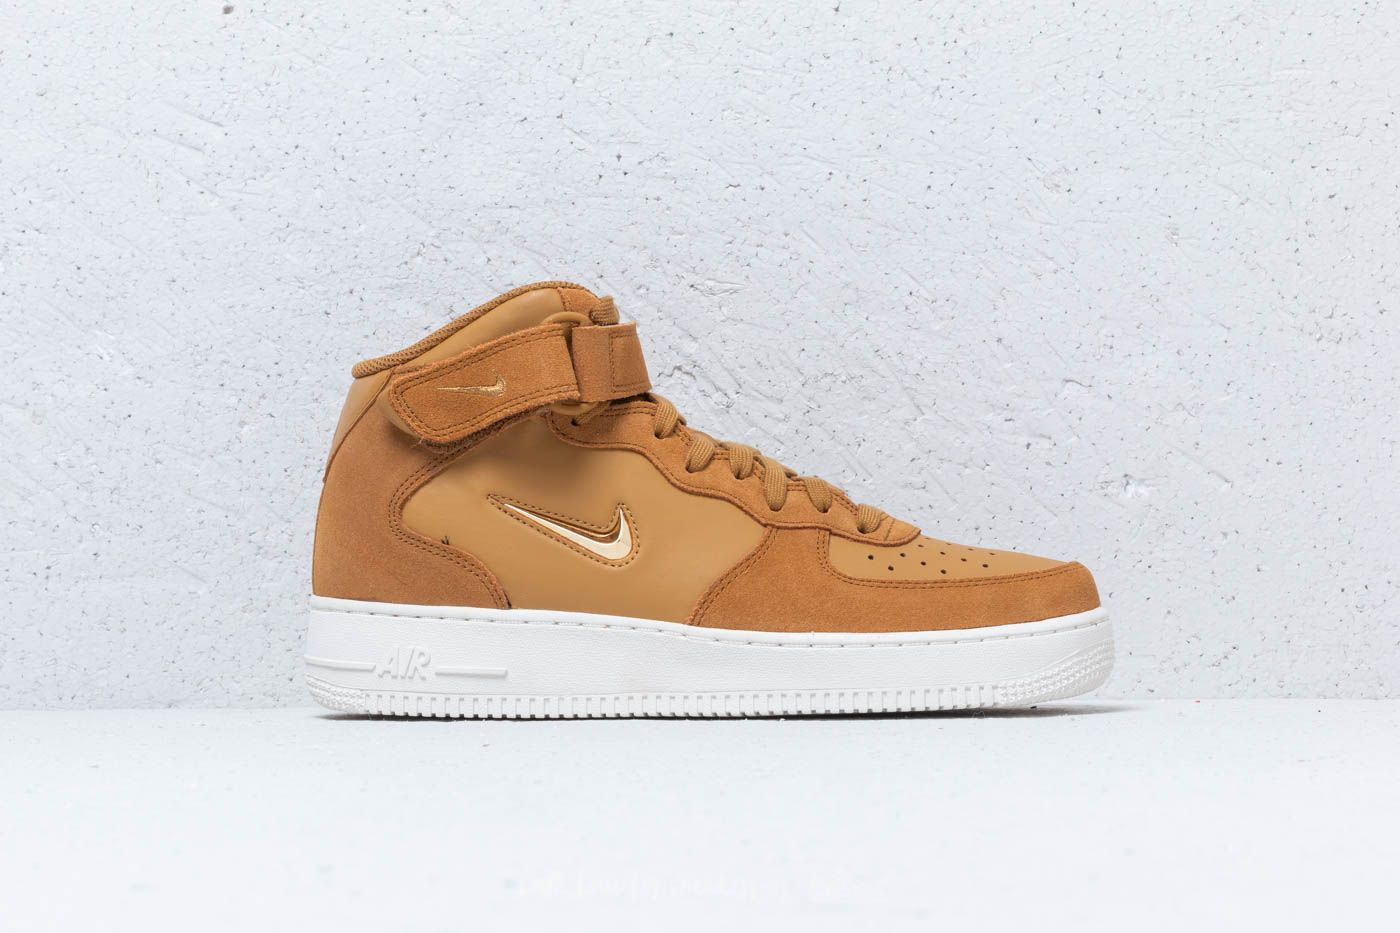 Nike Air Force 1 Mid '07 LV8 Muted Bronze Metallic Gold | Footshop